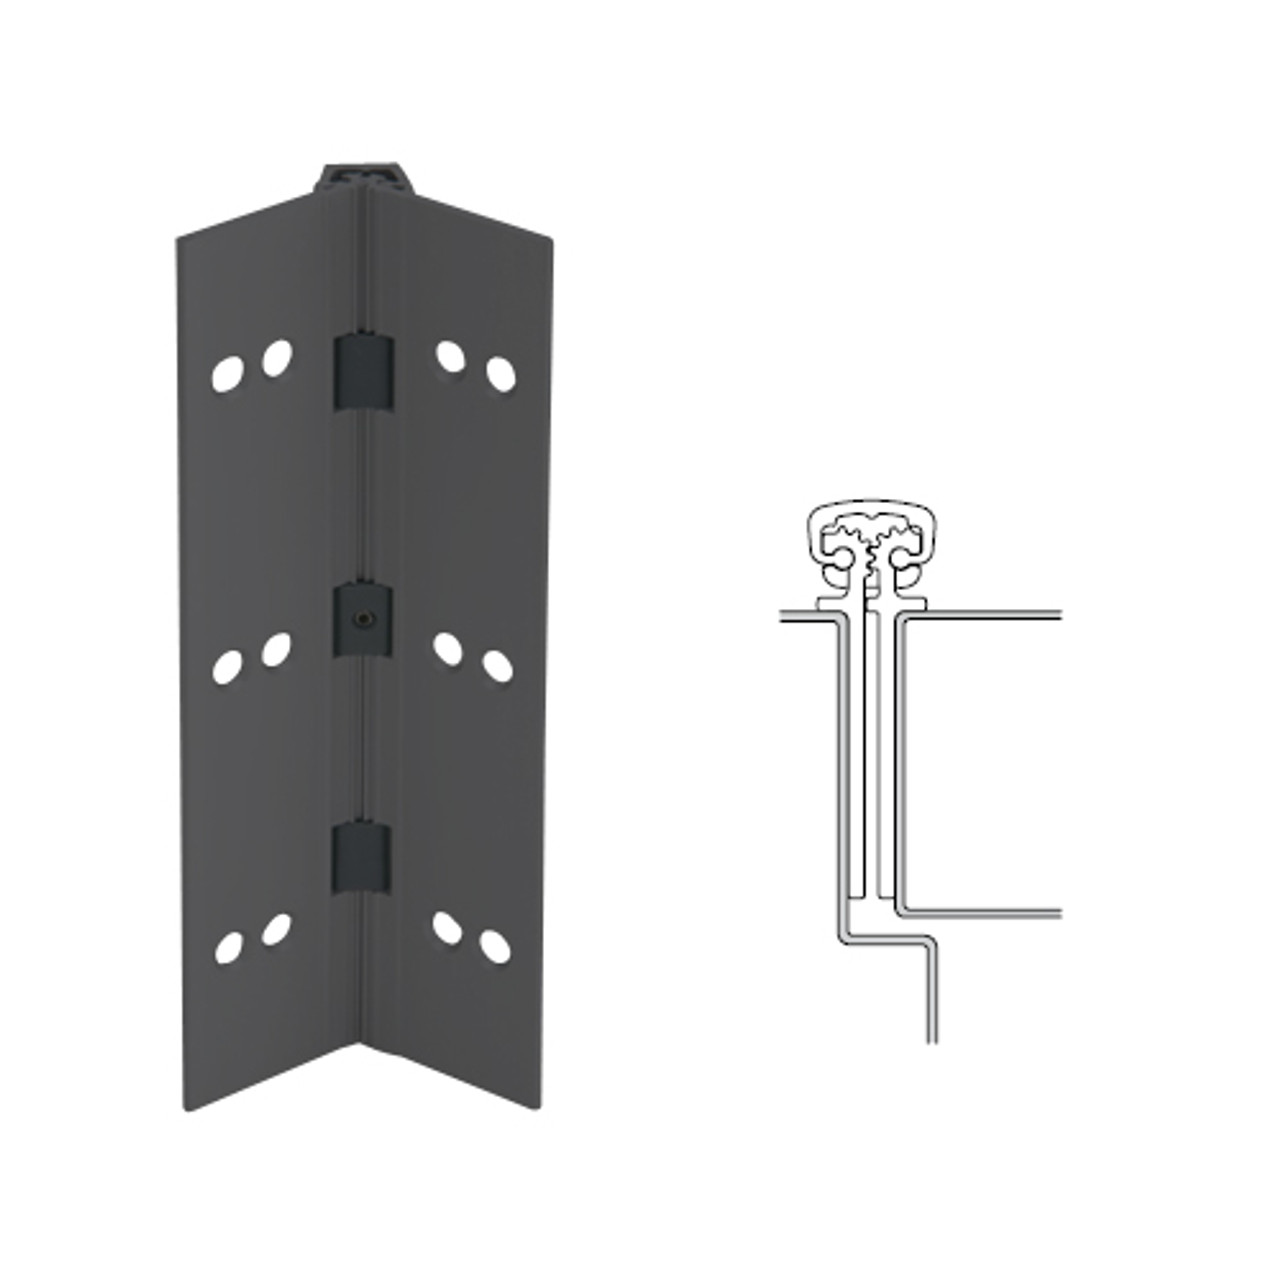 027XY-315AN-83 IVES Full Mortise Continuous Geared Hinges in Anodized Black